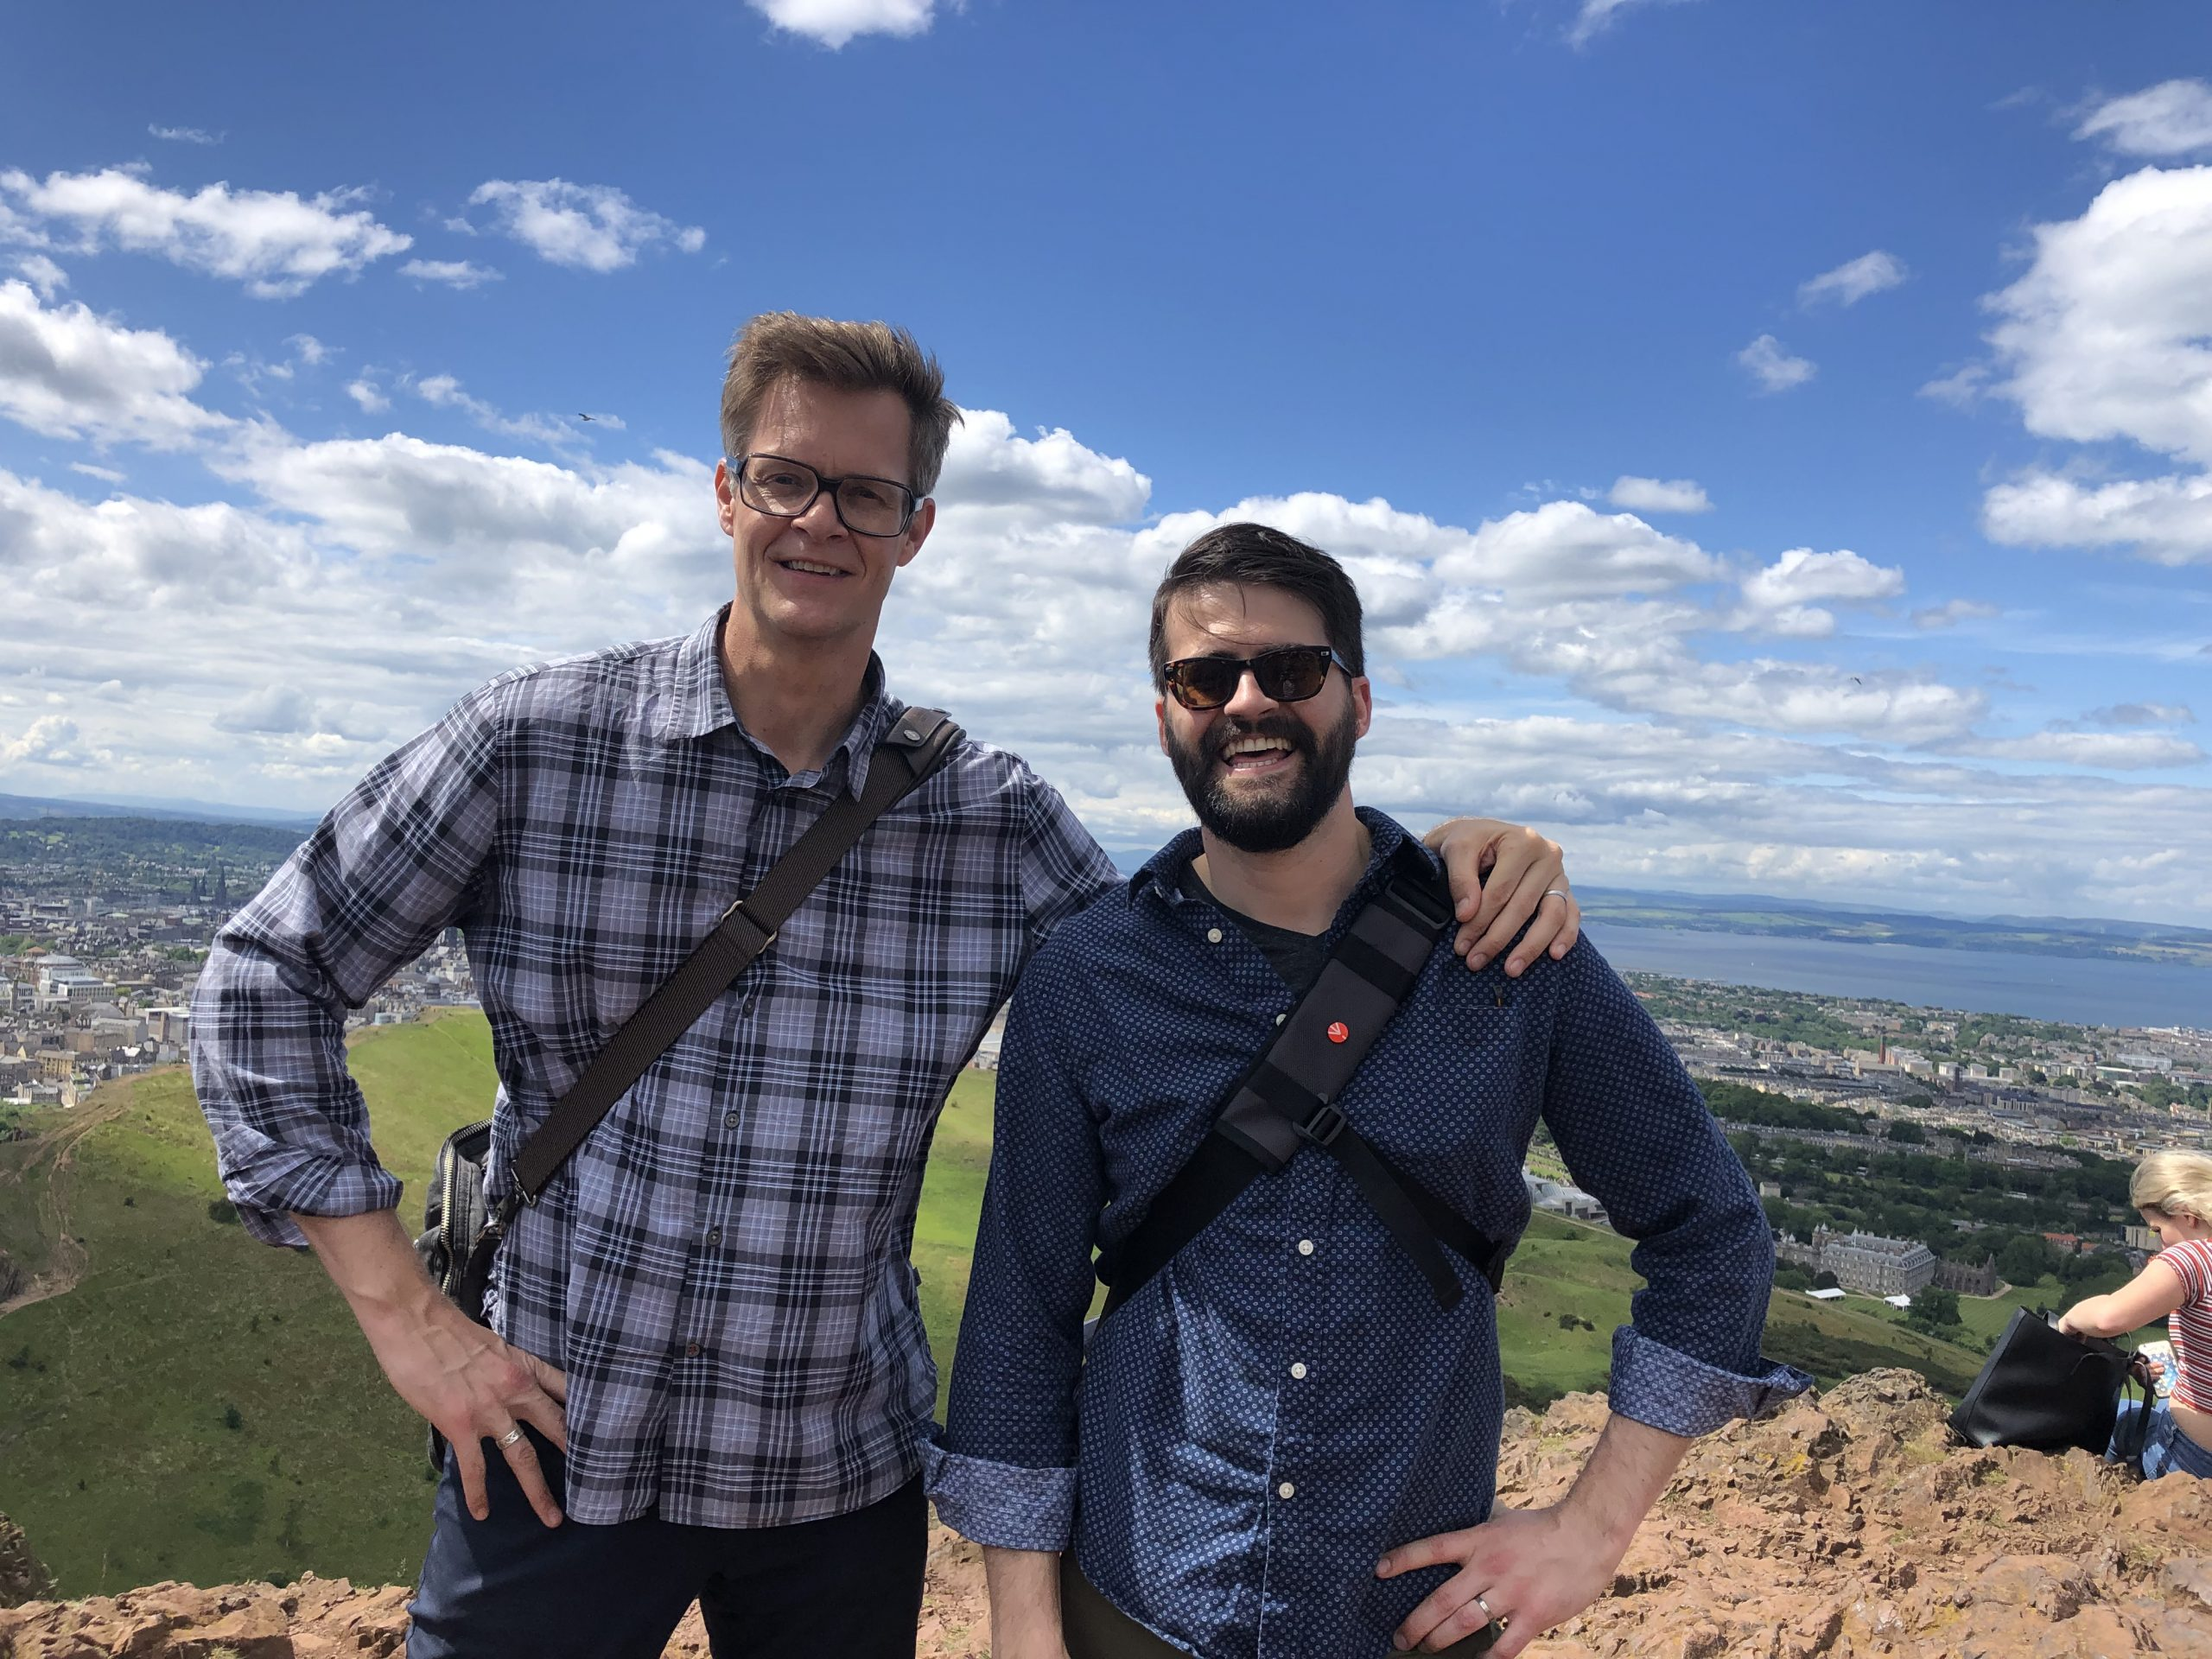 Justus & Pete at Arthur's Seat, Edinburgh